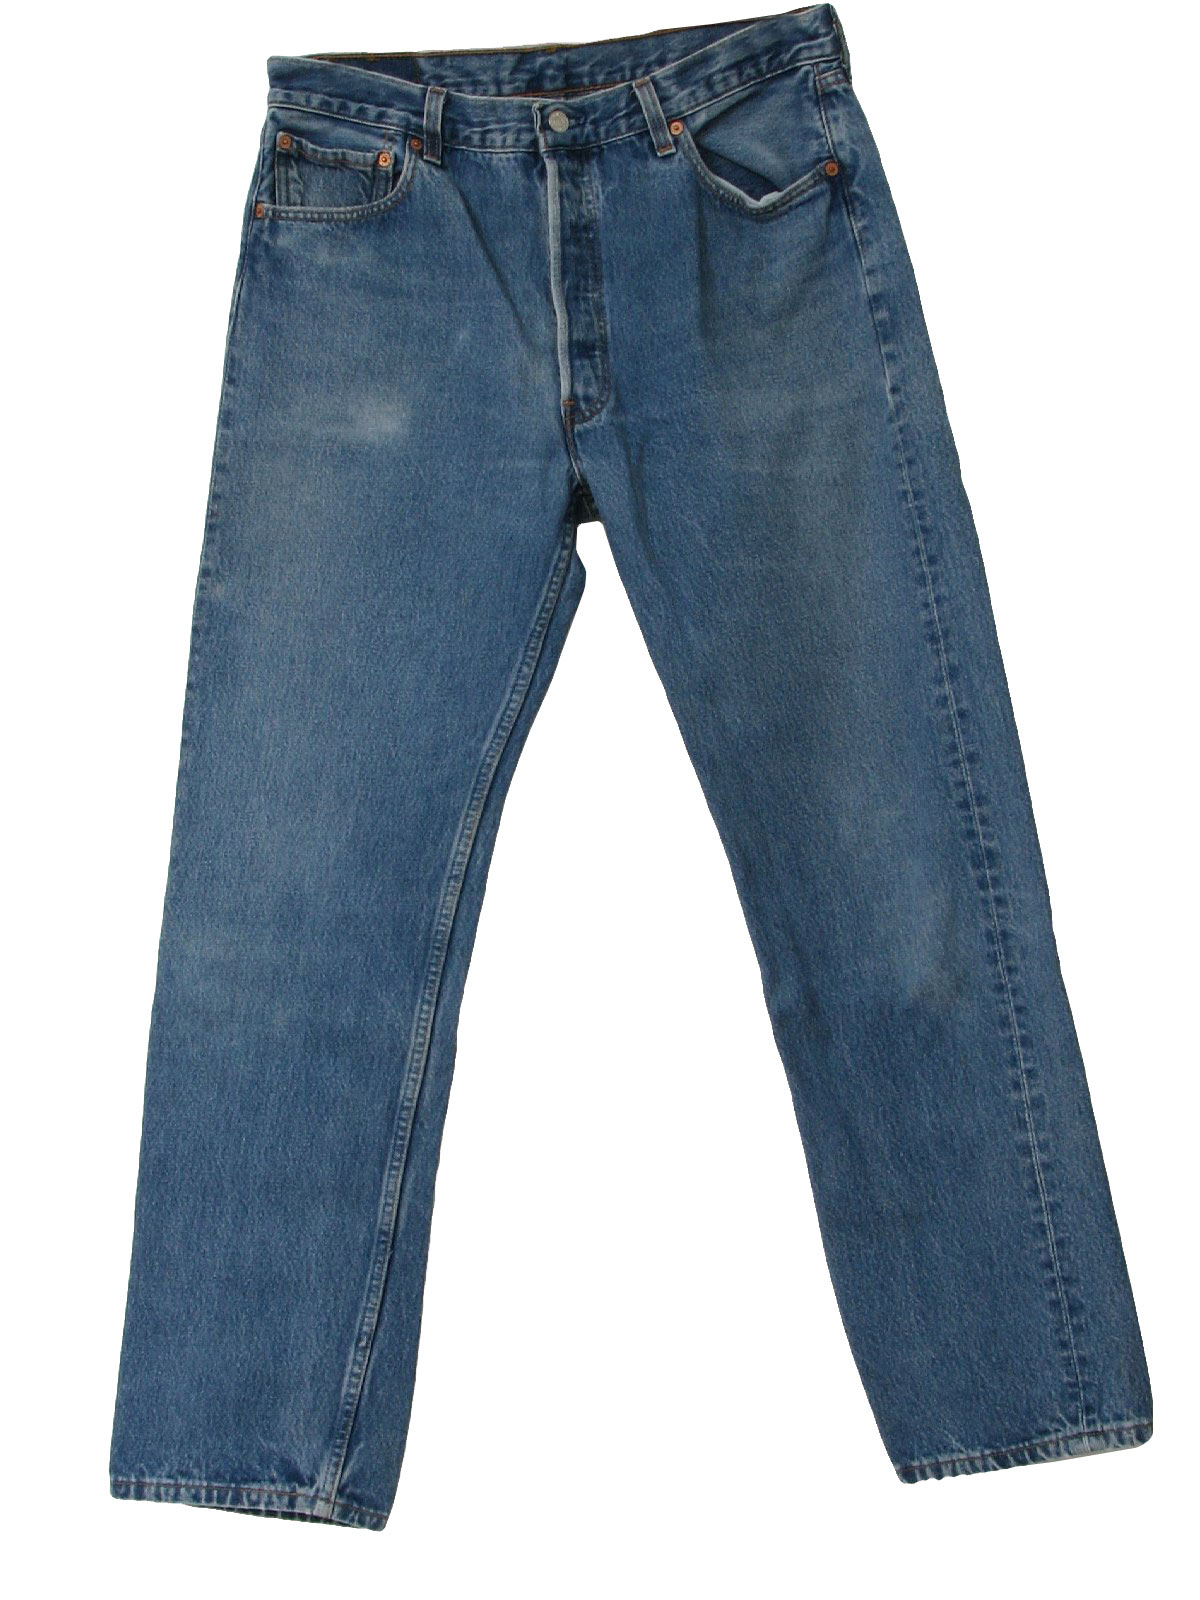 Faded Blue Jeans 90s -Levis- Mens faded blue